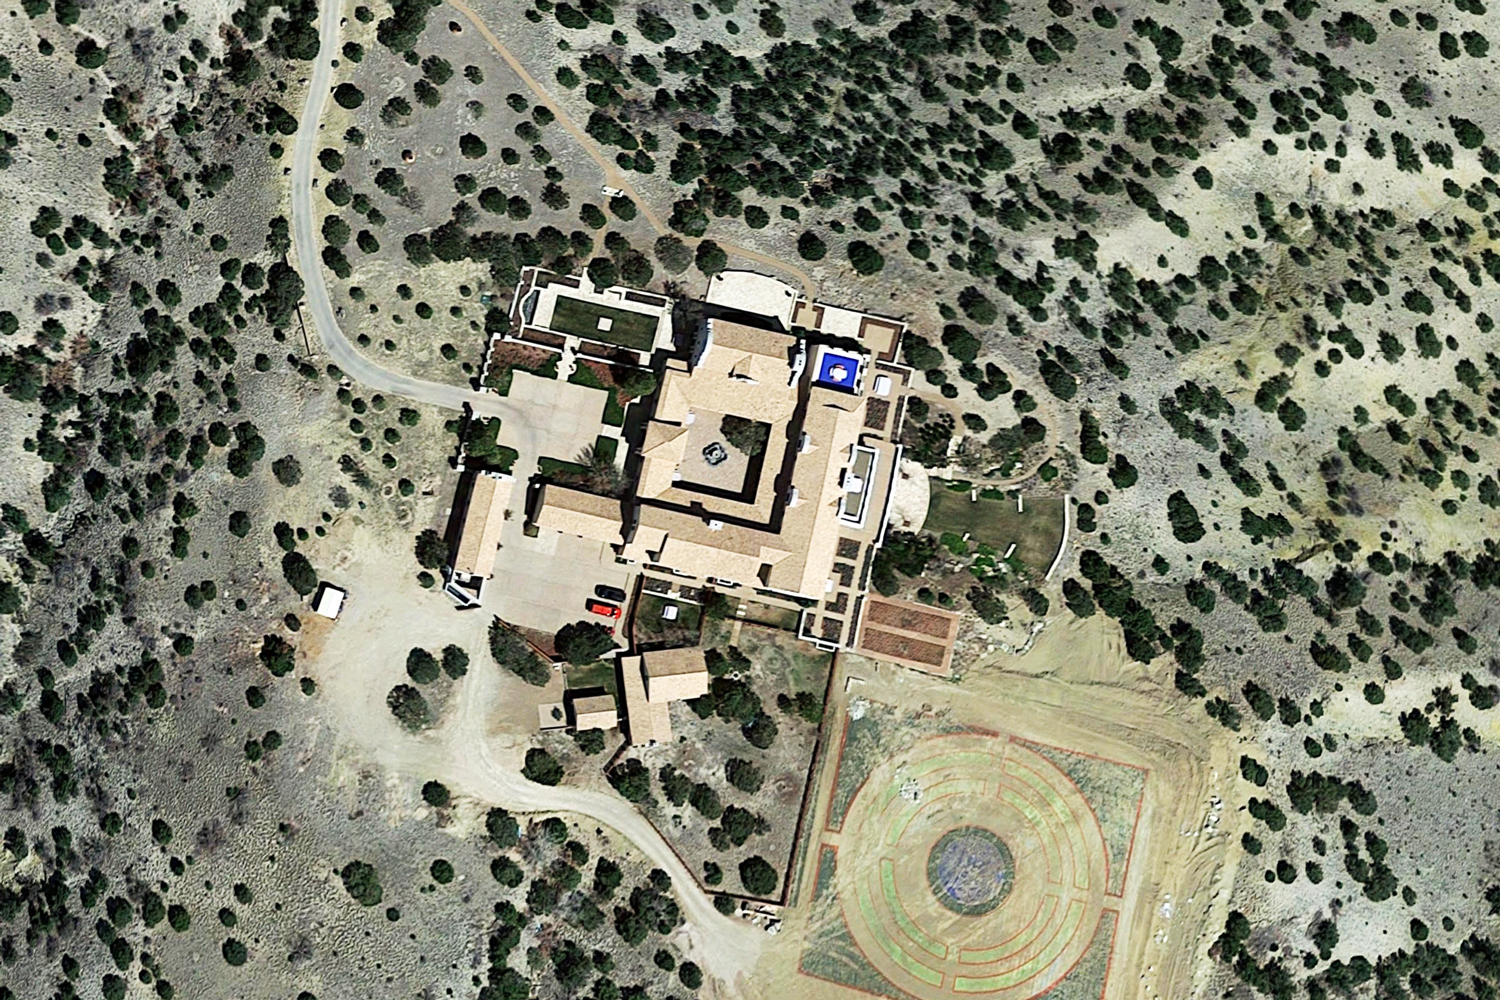 Zorro Ranch in Stanley, New Mexico (Credit: Google Maps)